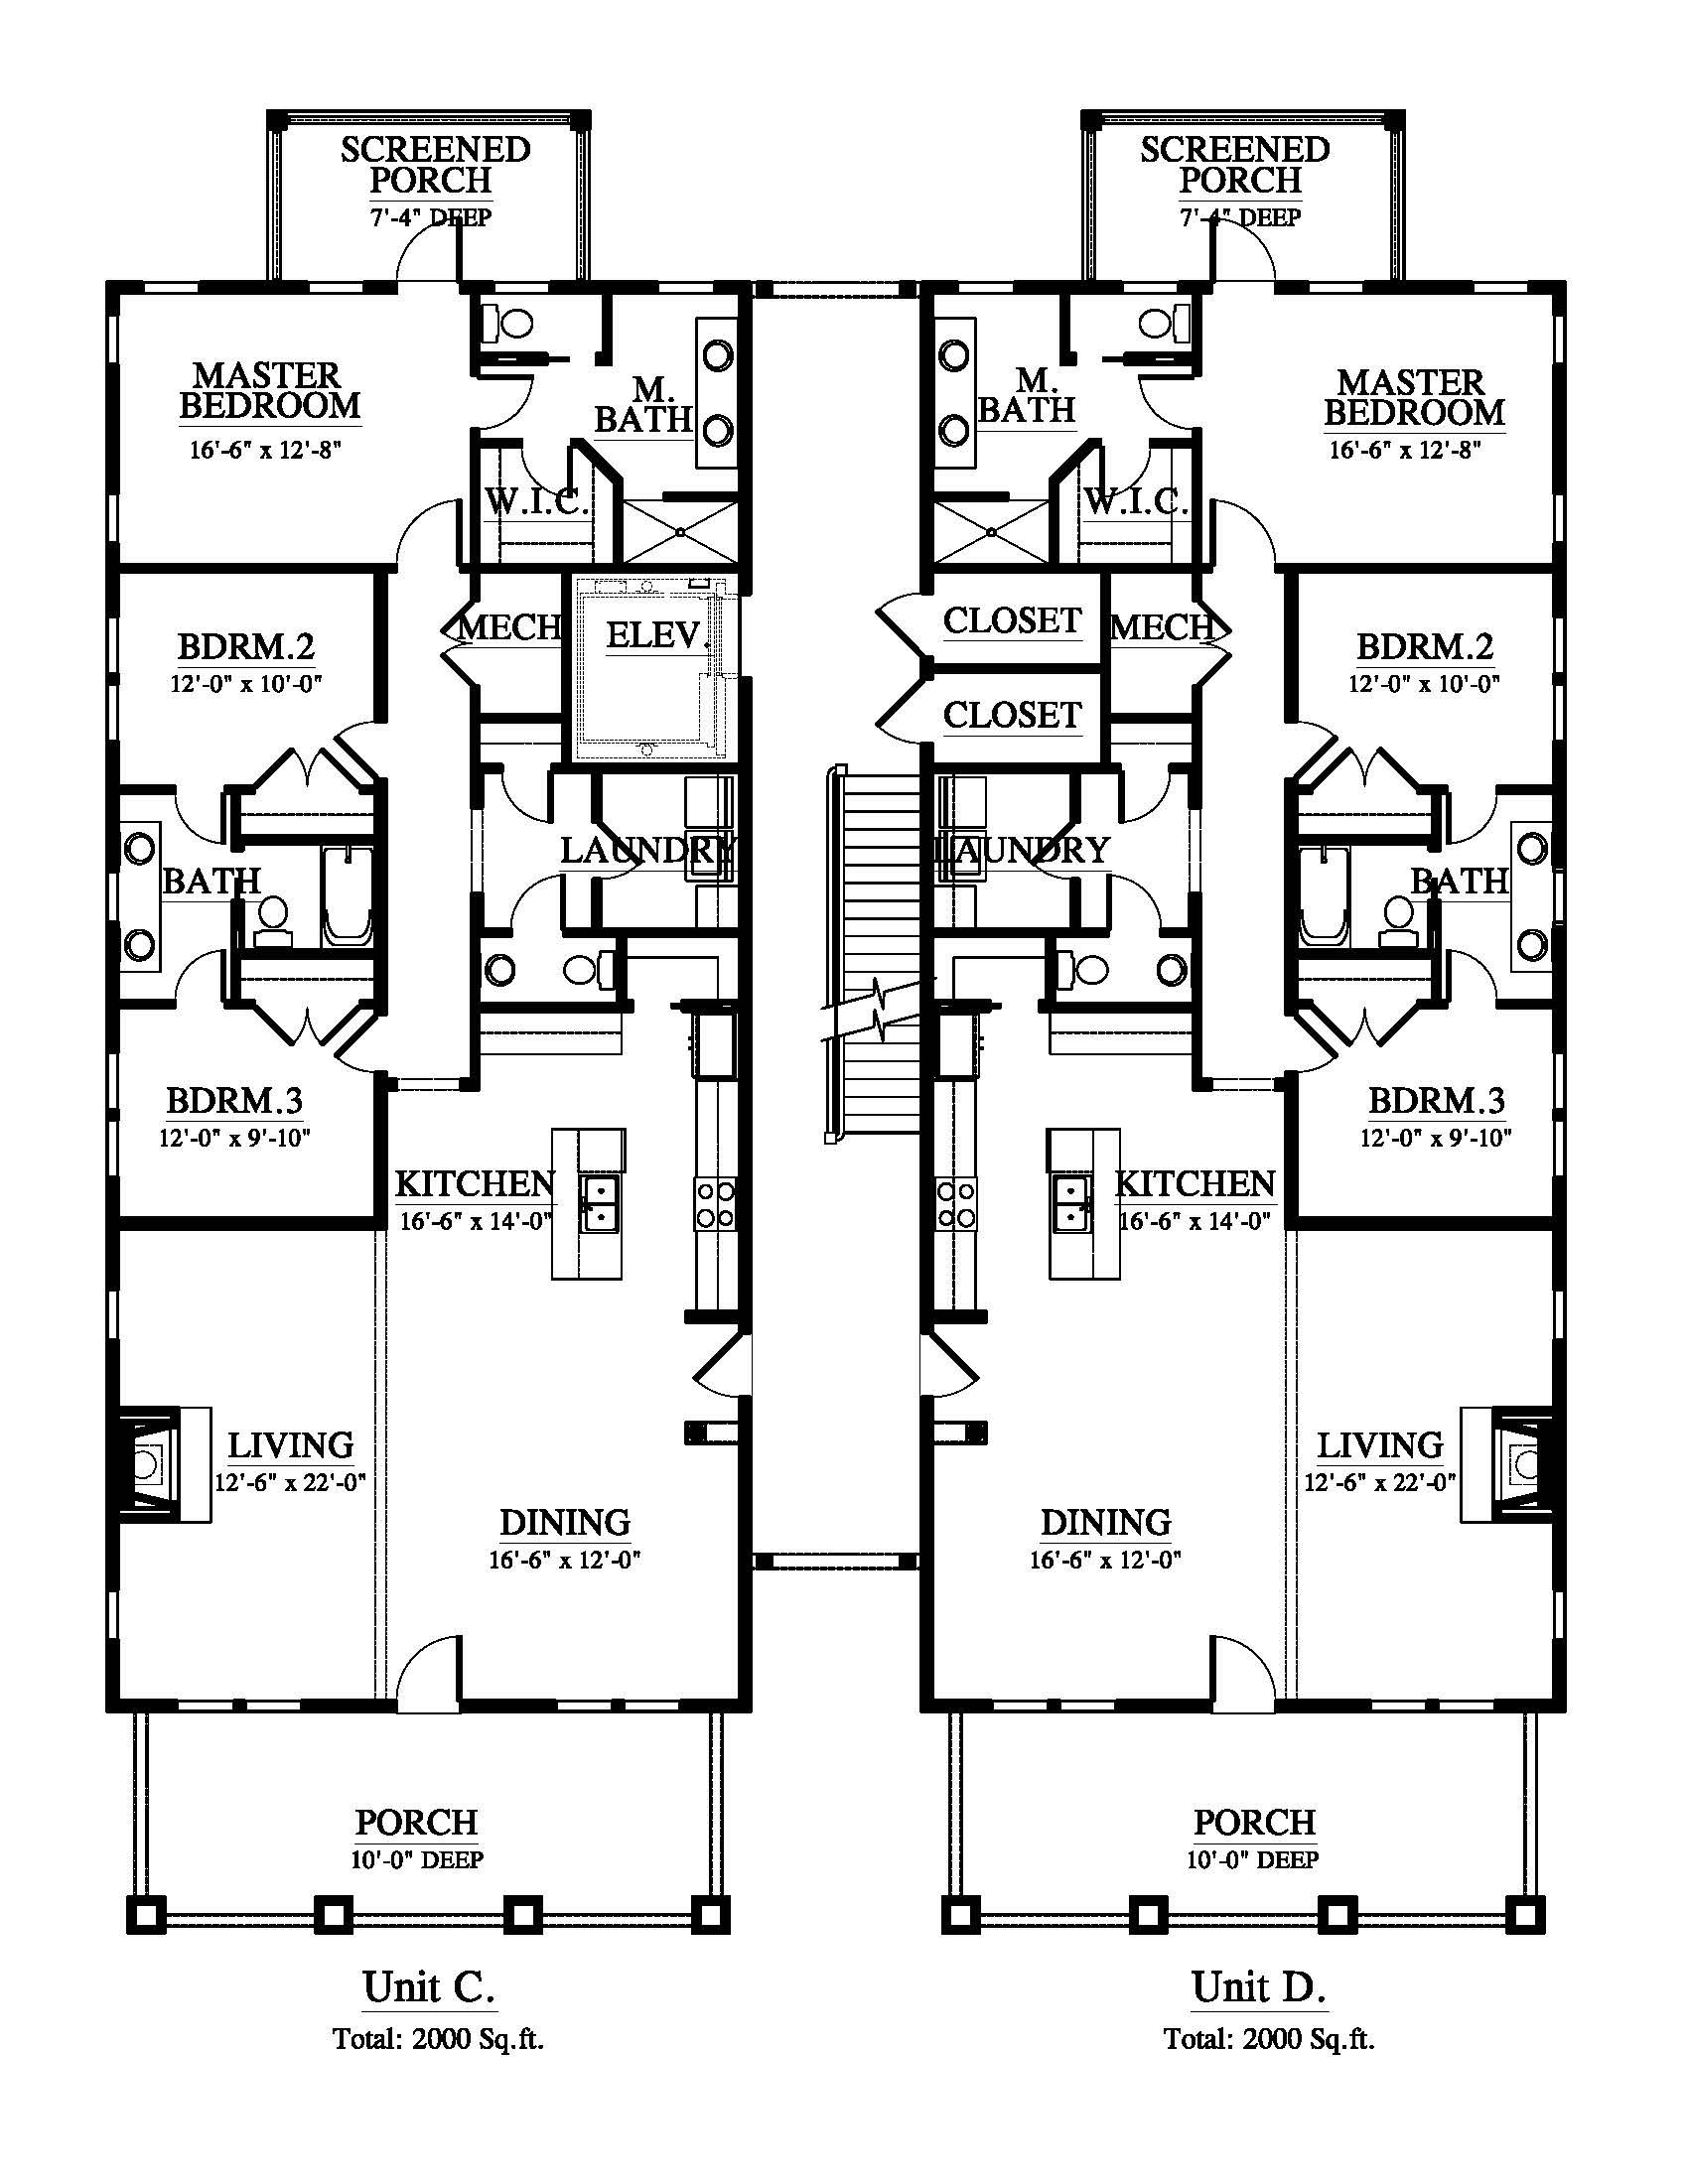 21 Glorious Floor Plan 2 Story 2000 Sq Ft That Will Beautify Your Space Duplex House Plans Duplex Floor Plans Floor Plan Layout